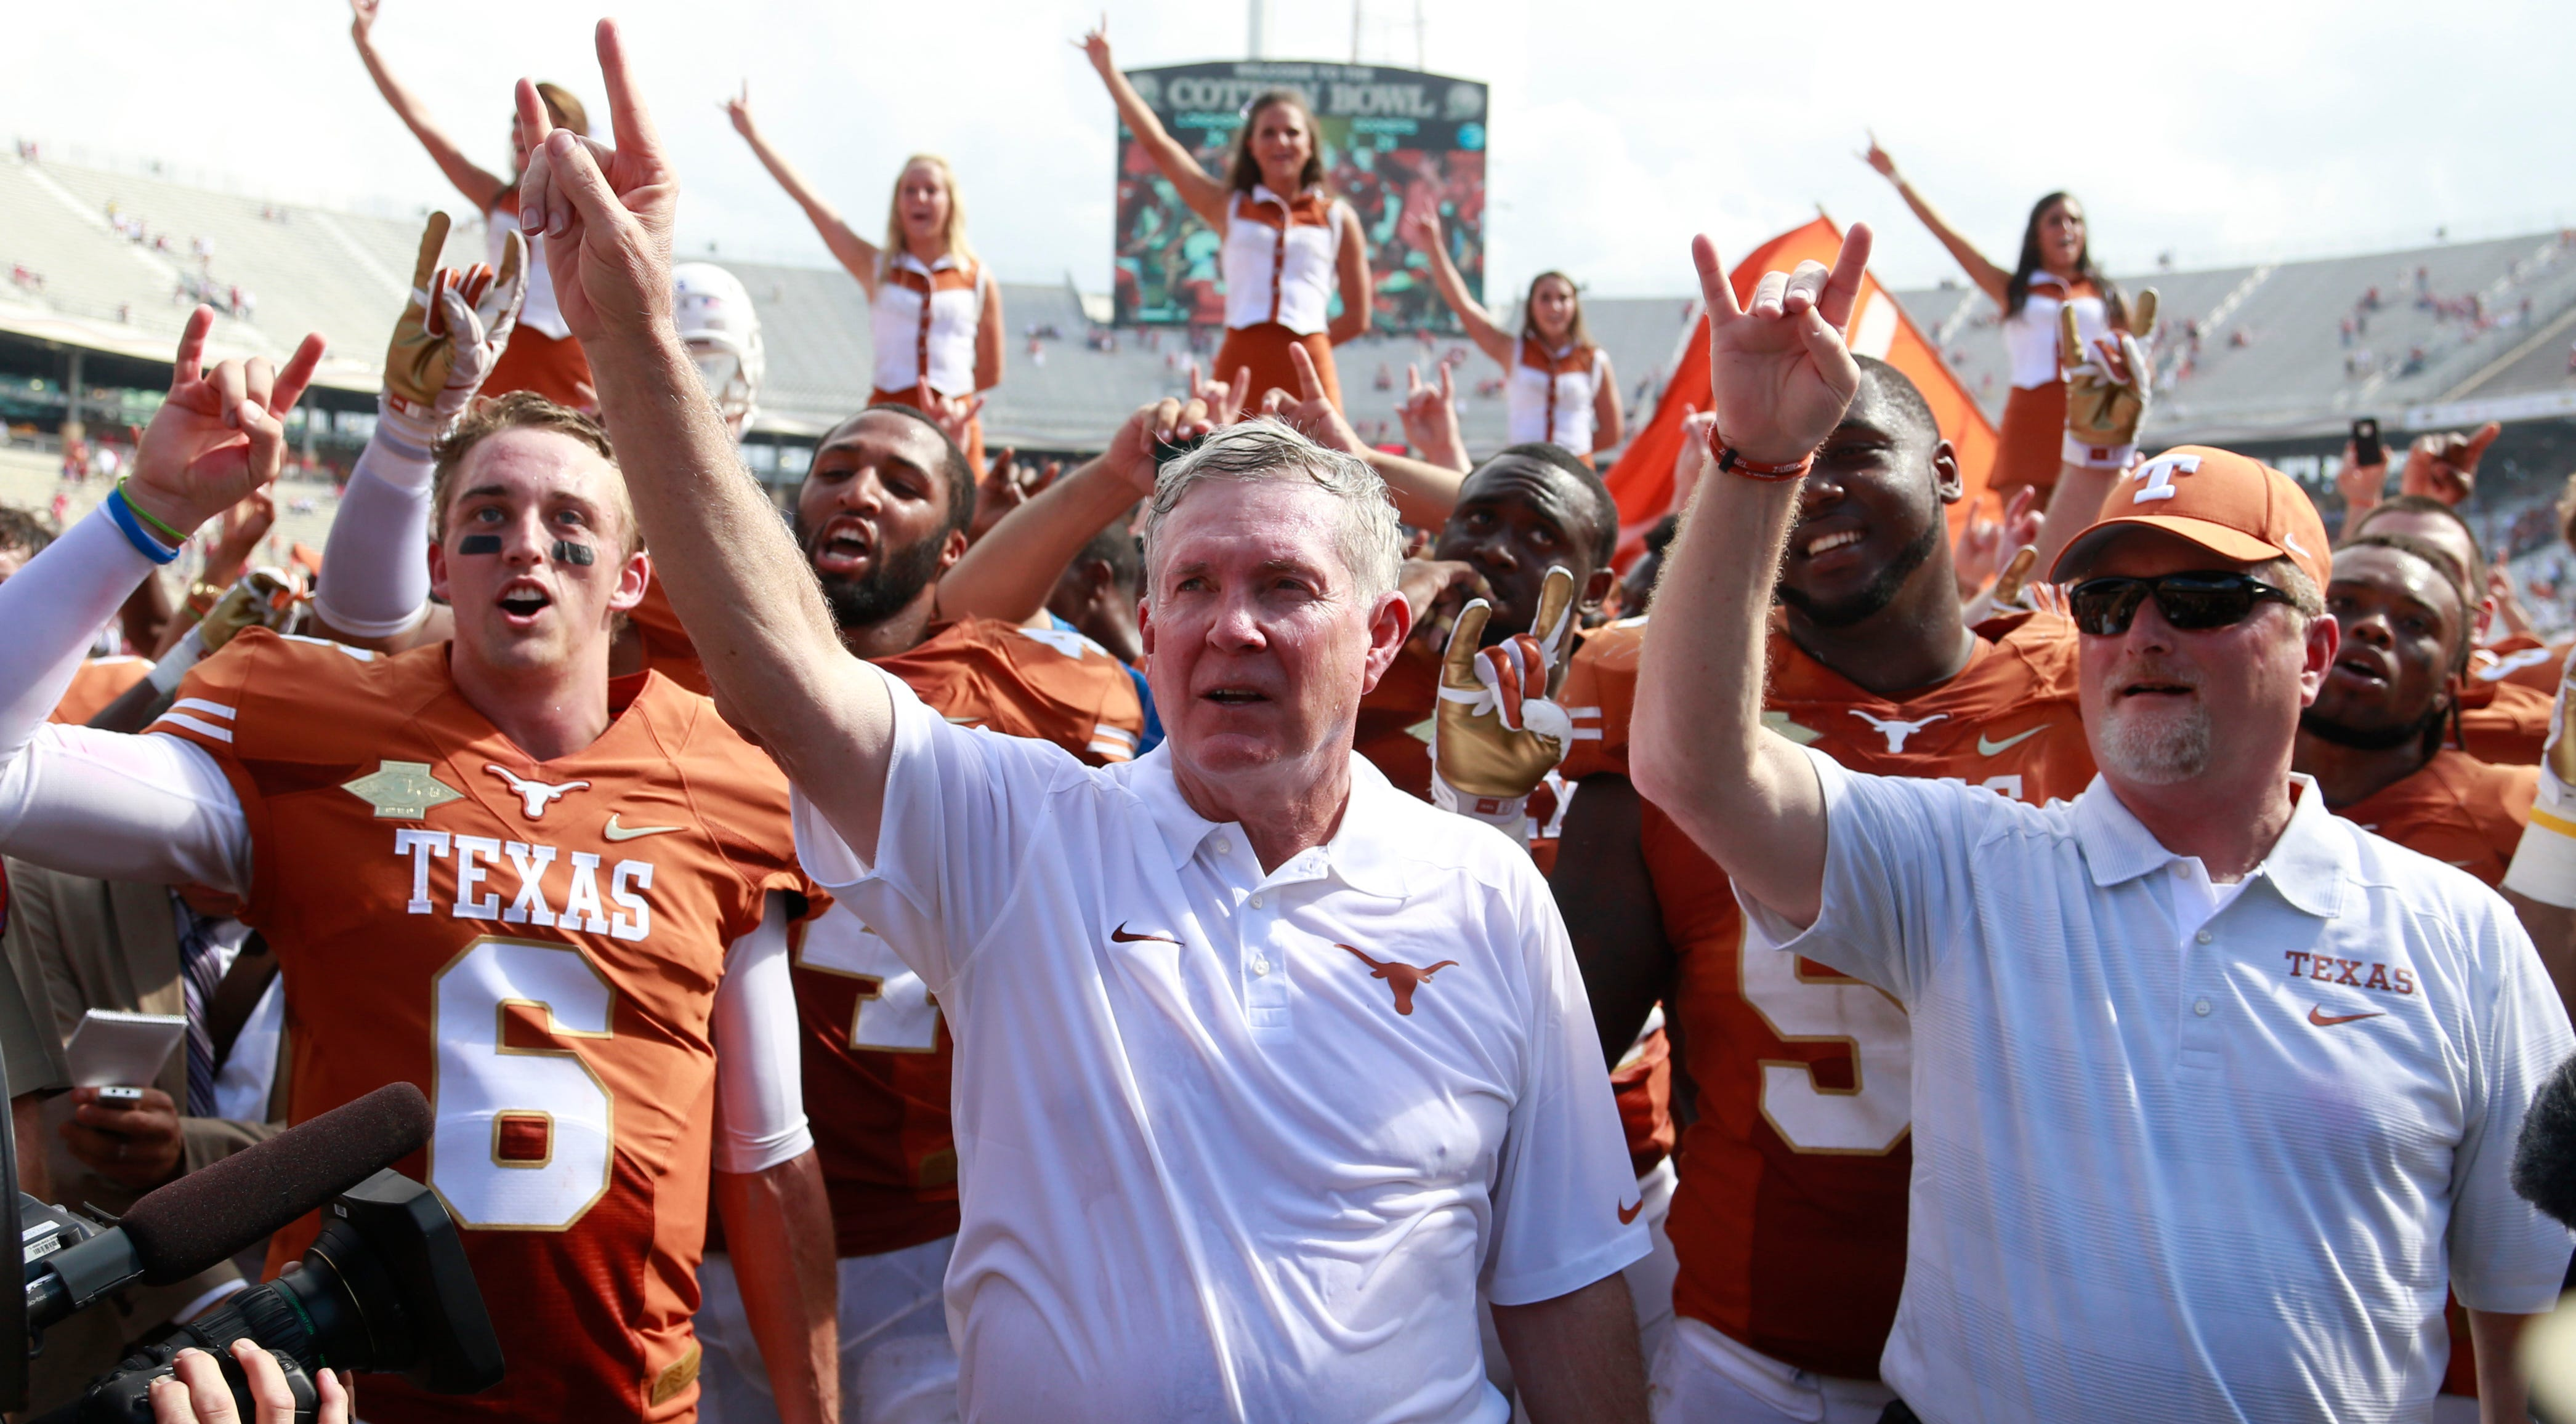 Texas coach Mack Brown celebrates winning his team beat Oklahoma in 2013.